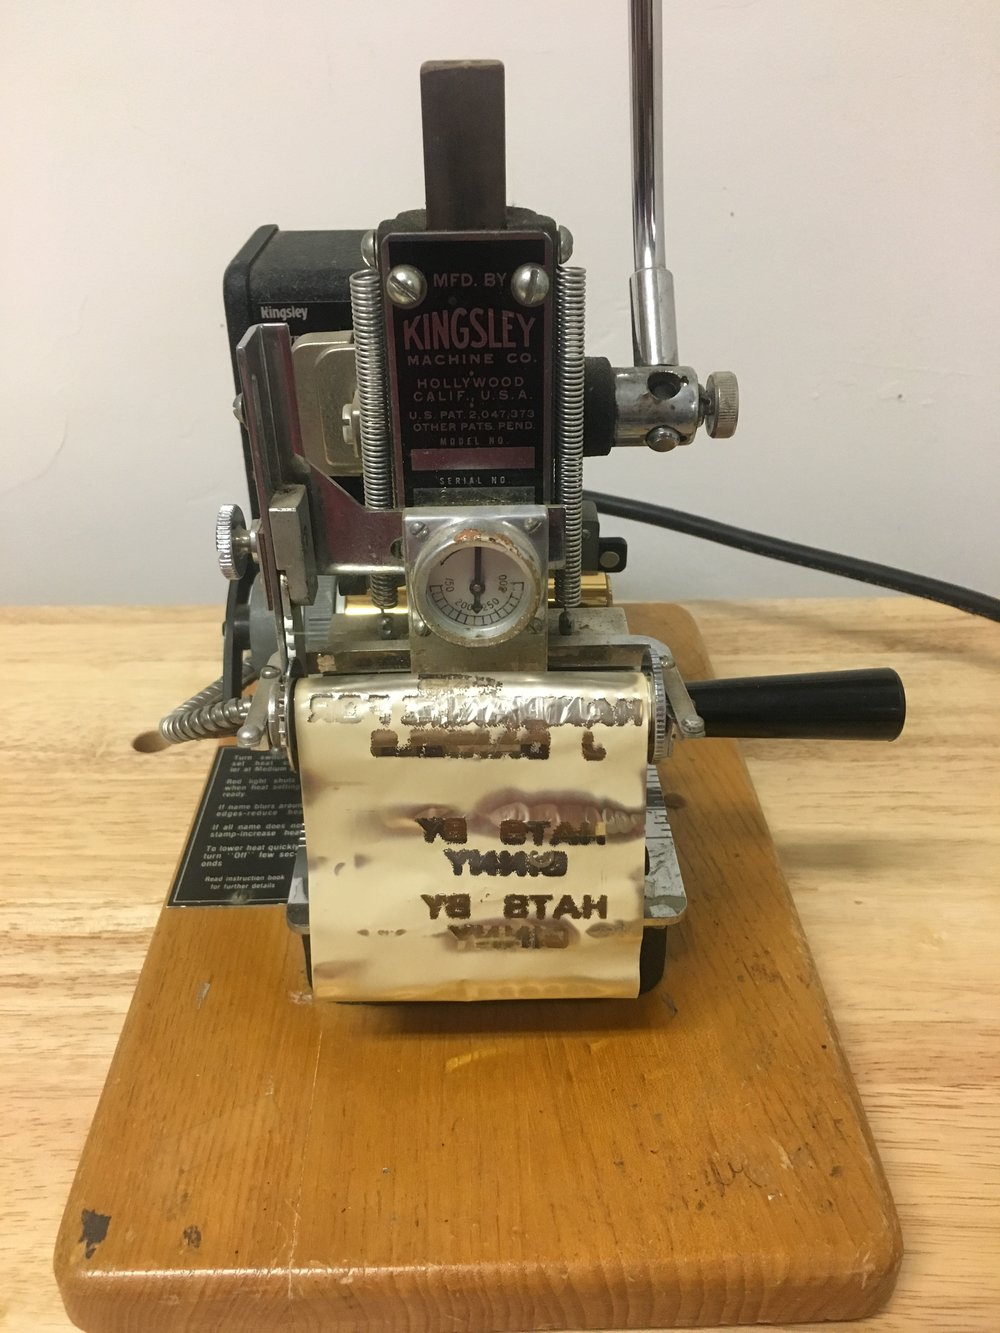 Kingsley M50 Foil Stamping Machine. Circa 1940's. I believe this is the model from research and pictures I have found on ebay and Facebook. The model and serial number are worn off. I use this to stamp the sweatbands. Kicking it old school around here.